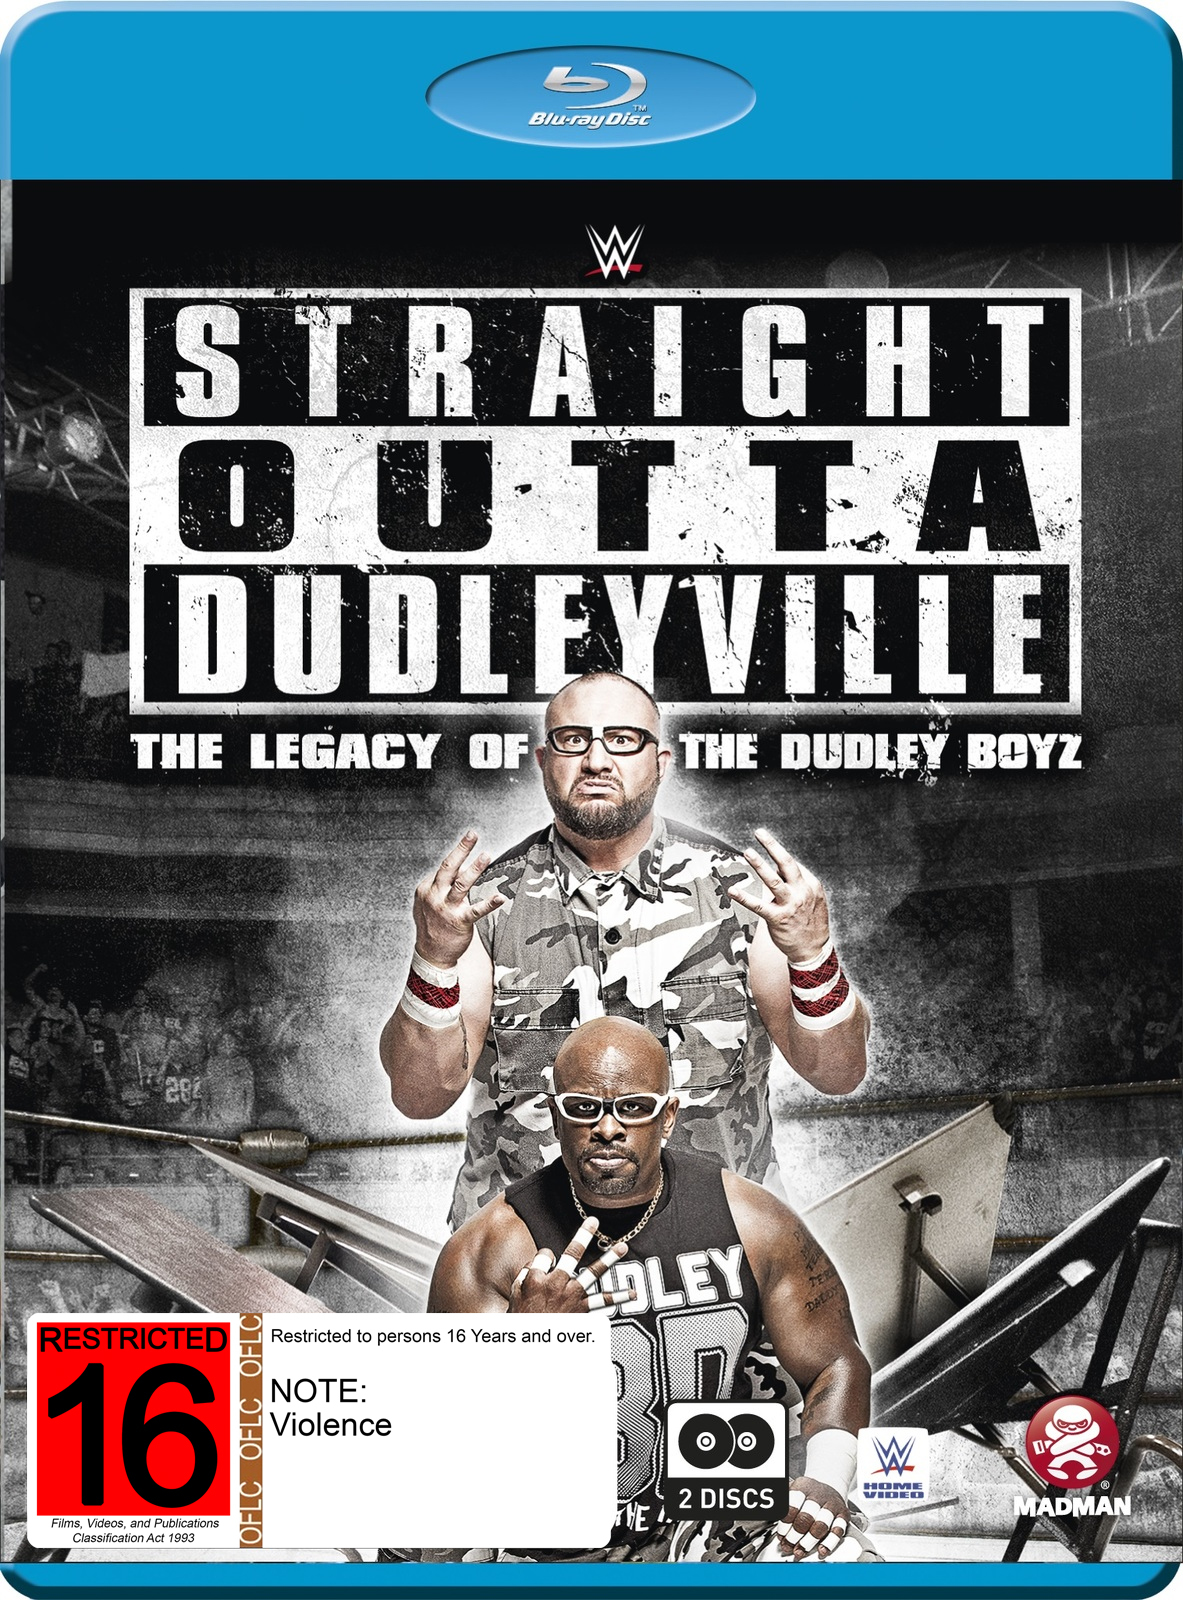 WWE: Straight Outta Dudleyville: The Legacy Of The Dudley Boyz on Blu-ray image